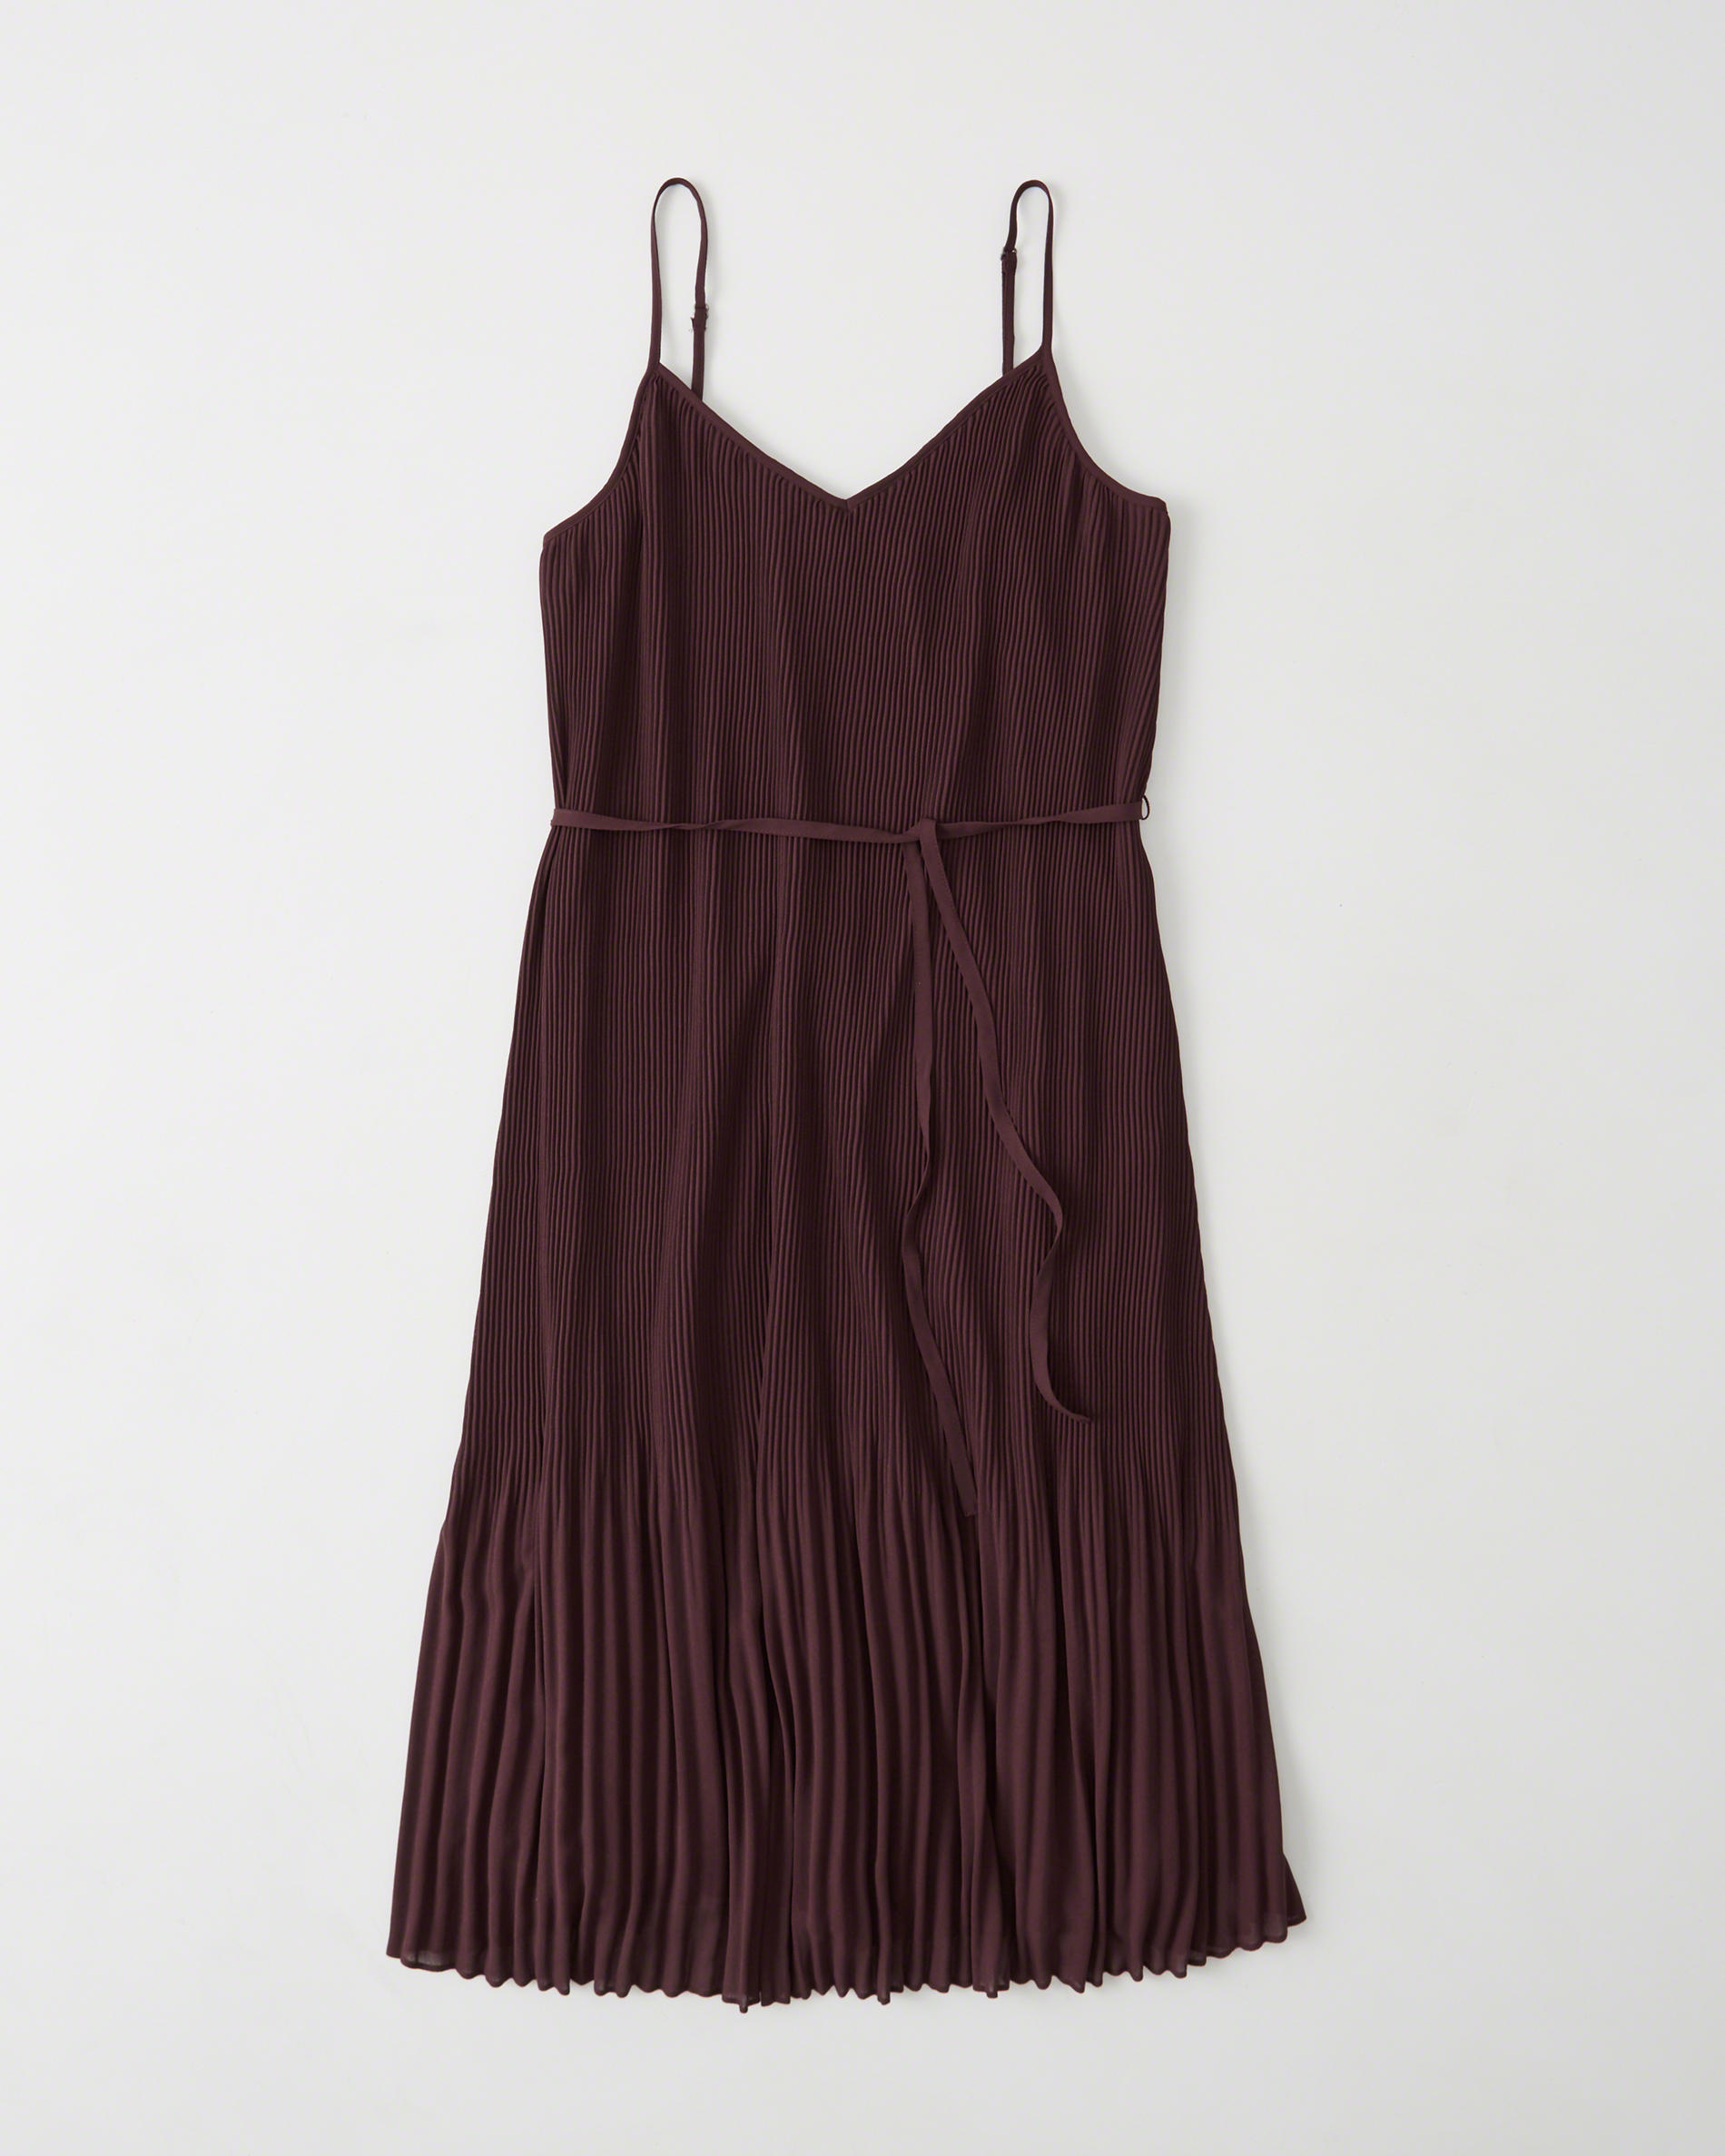 Abercrombie & Fitch Chiffon Pleated Midi Dress in Burgundy